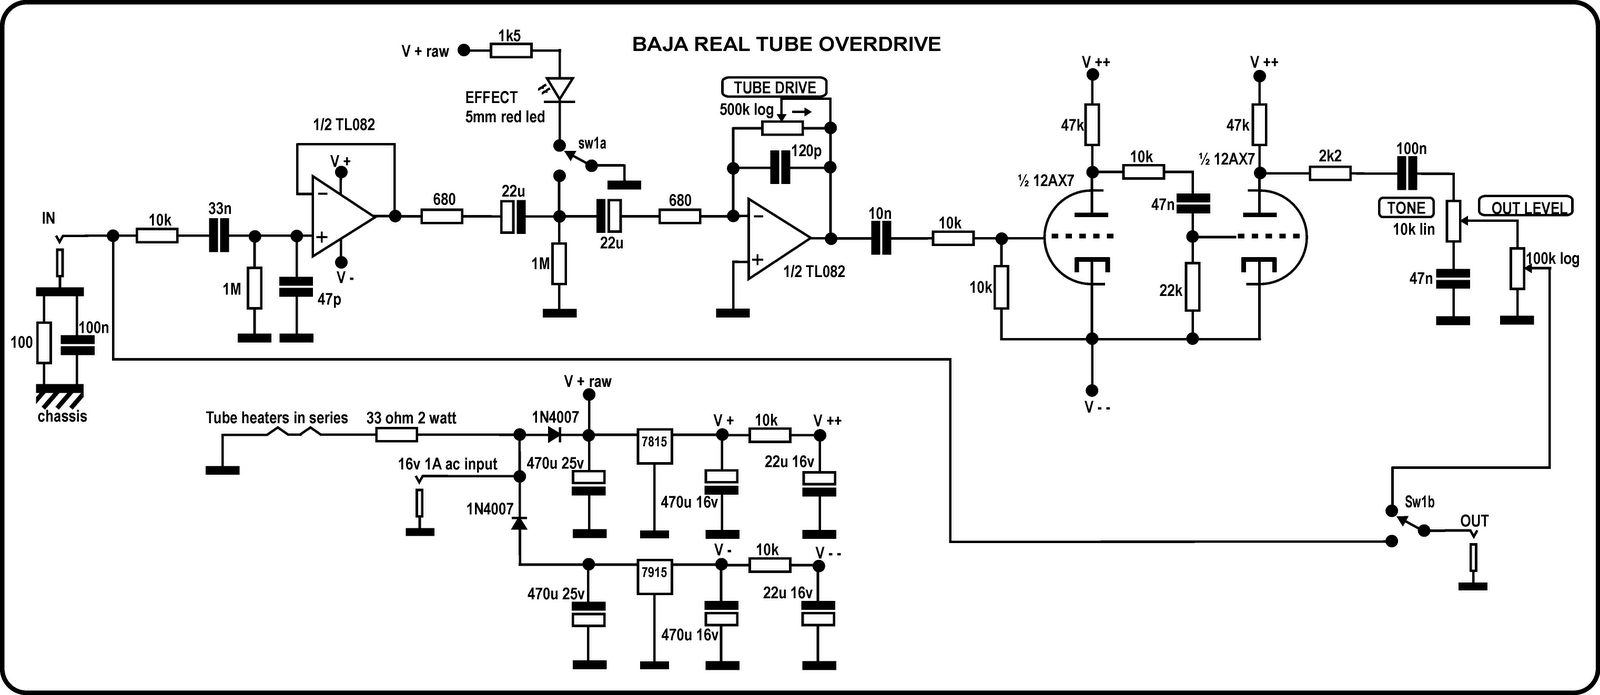 03ff390309d2644dfa300712d7089c44 baja real tube overdrive schematic png 1,600�695 pixels pcb Basic Electrical Wiring Diagrams at eliteediting.co